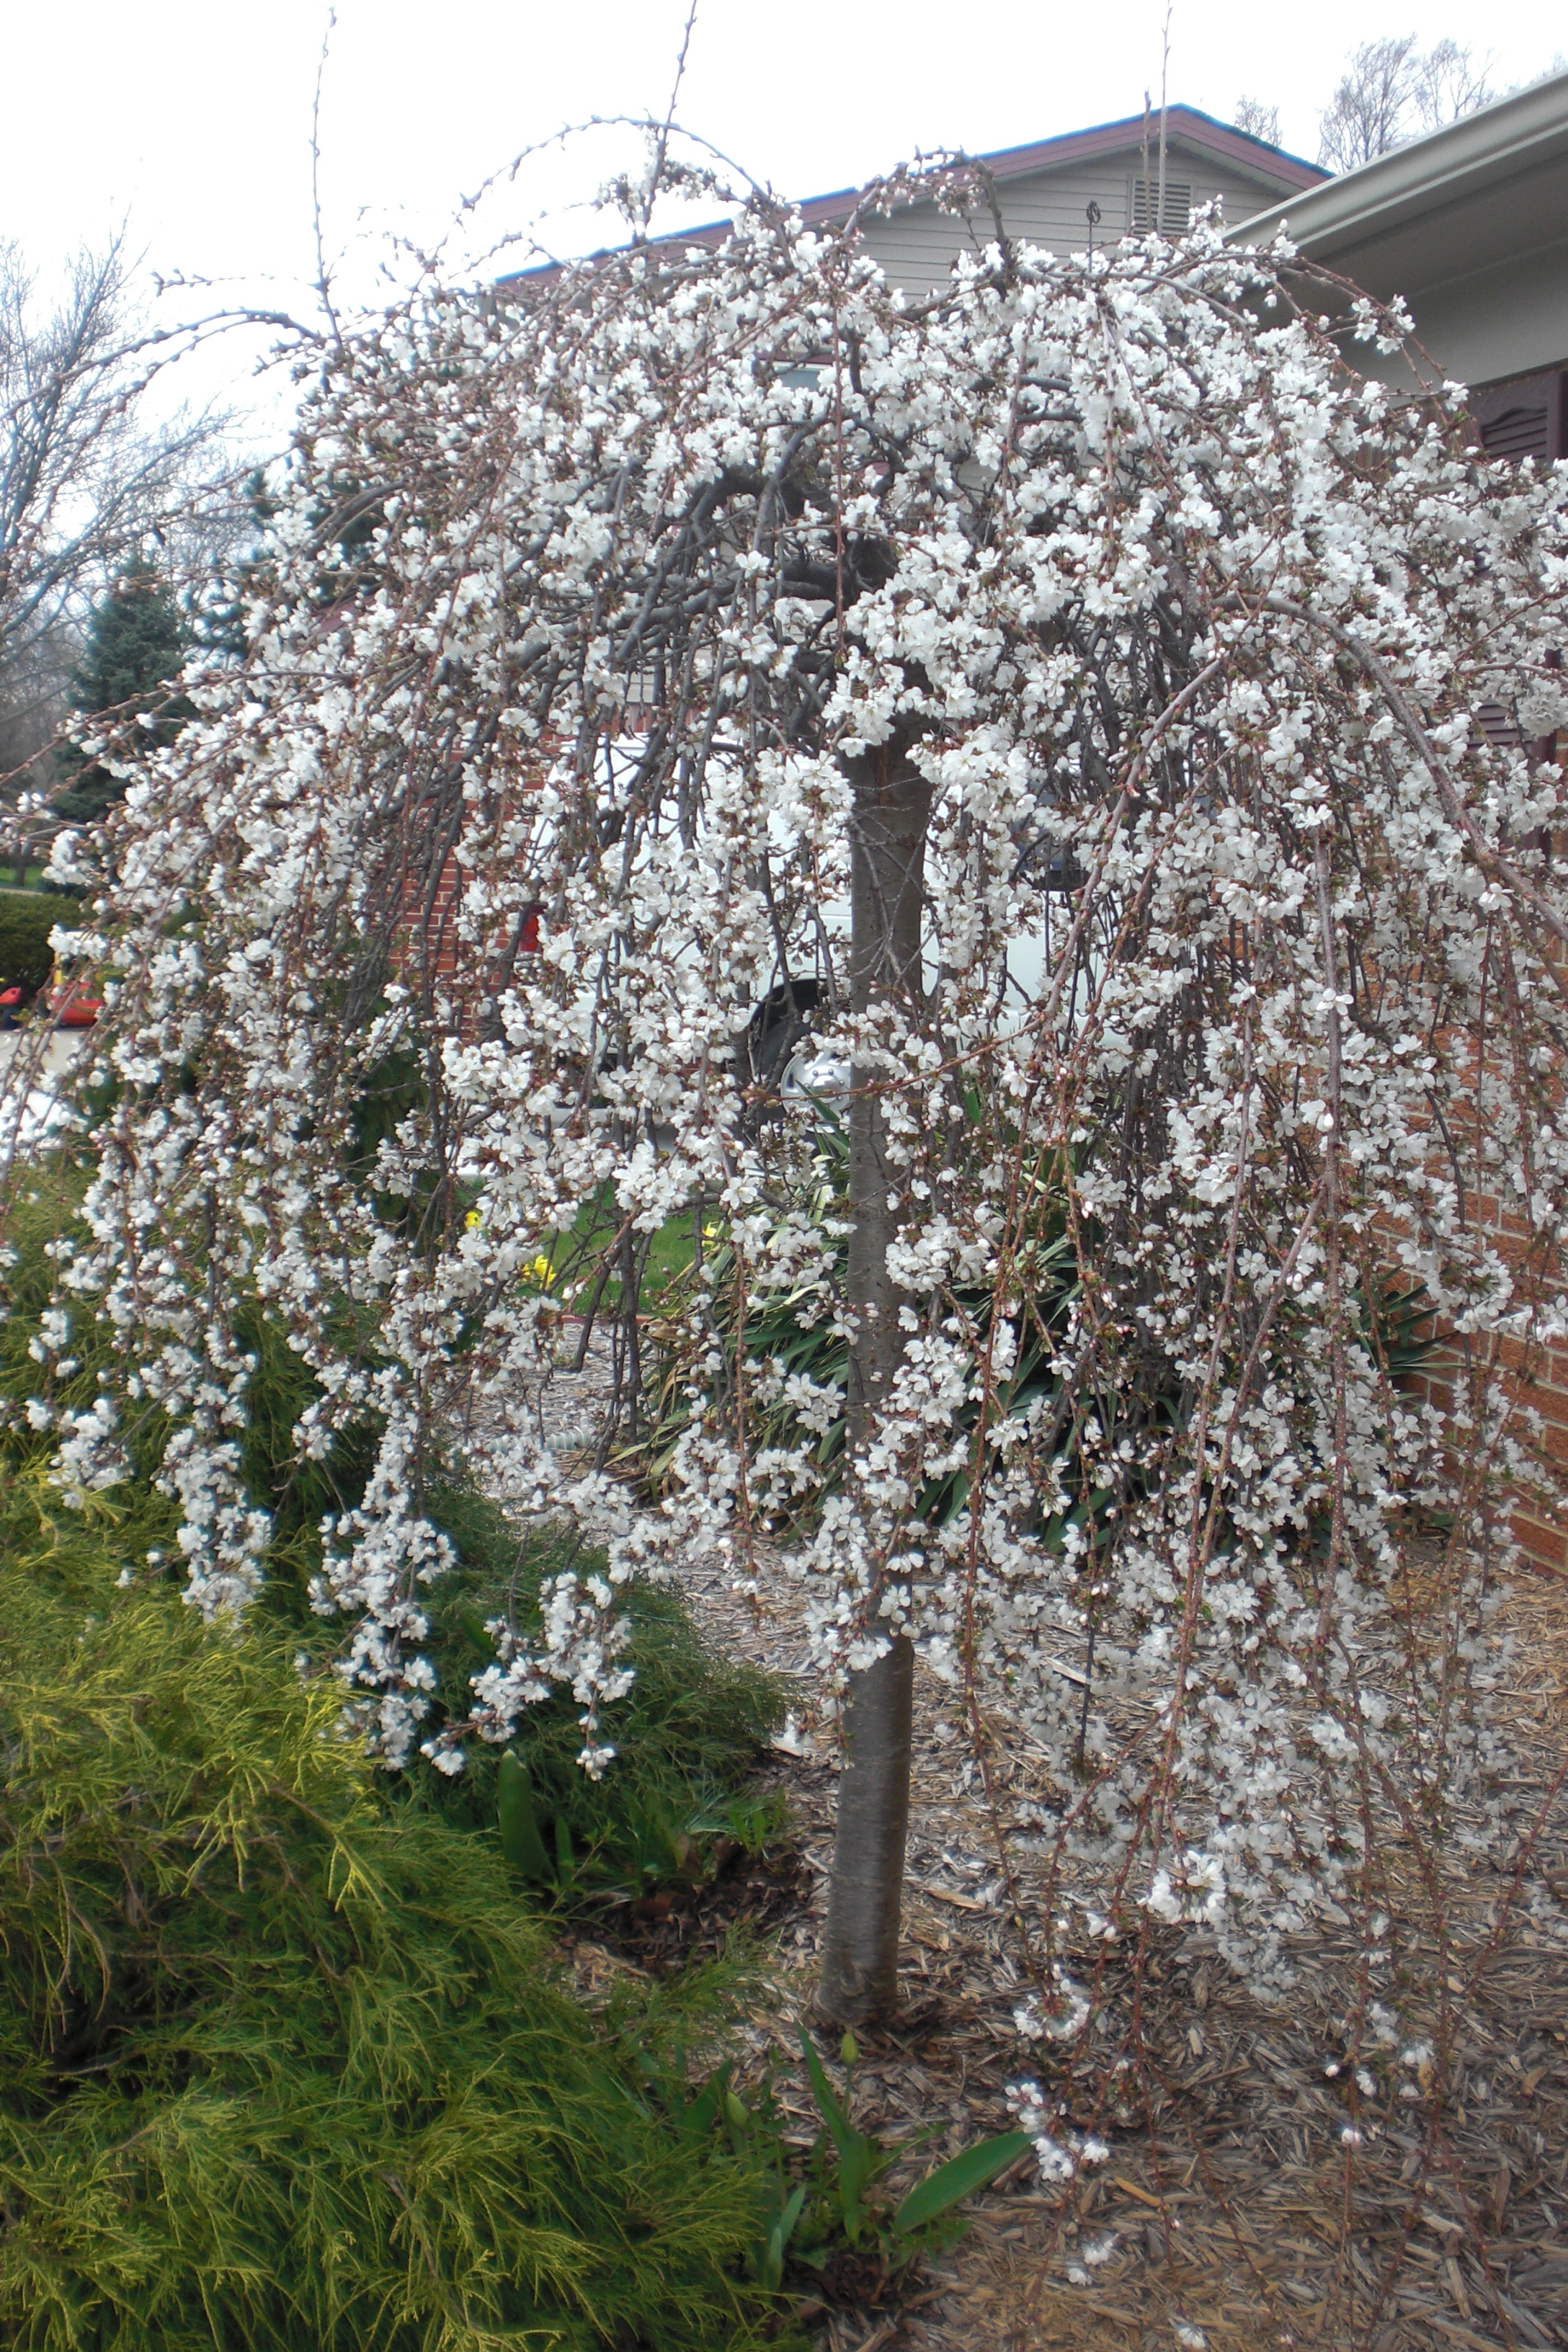 Flowering tree by my house. It will turn pink in a few weeks!